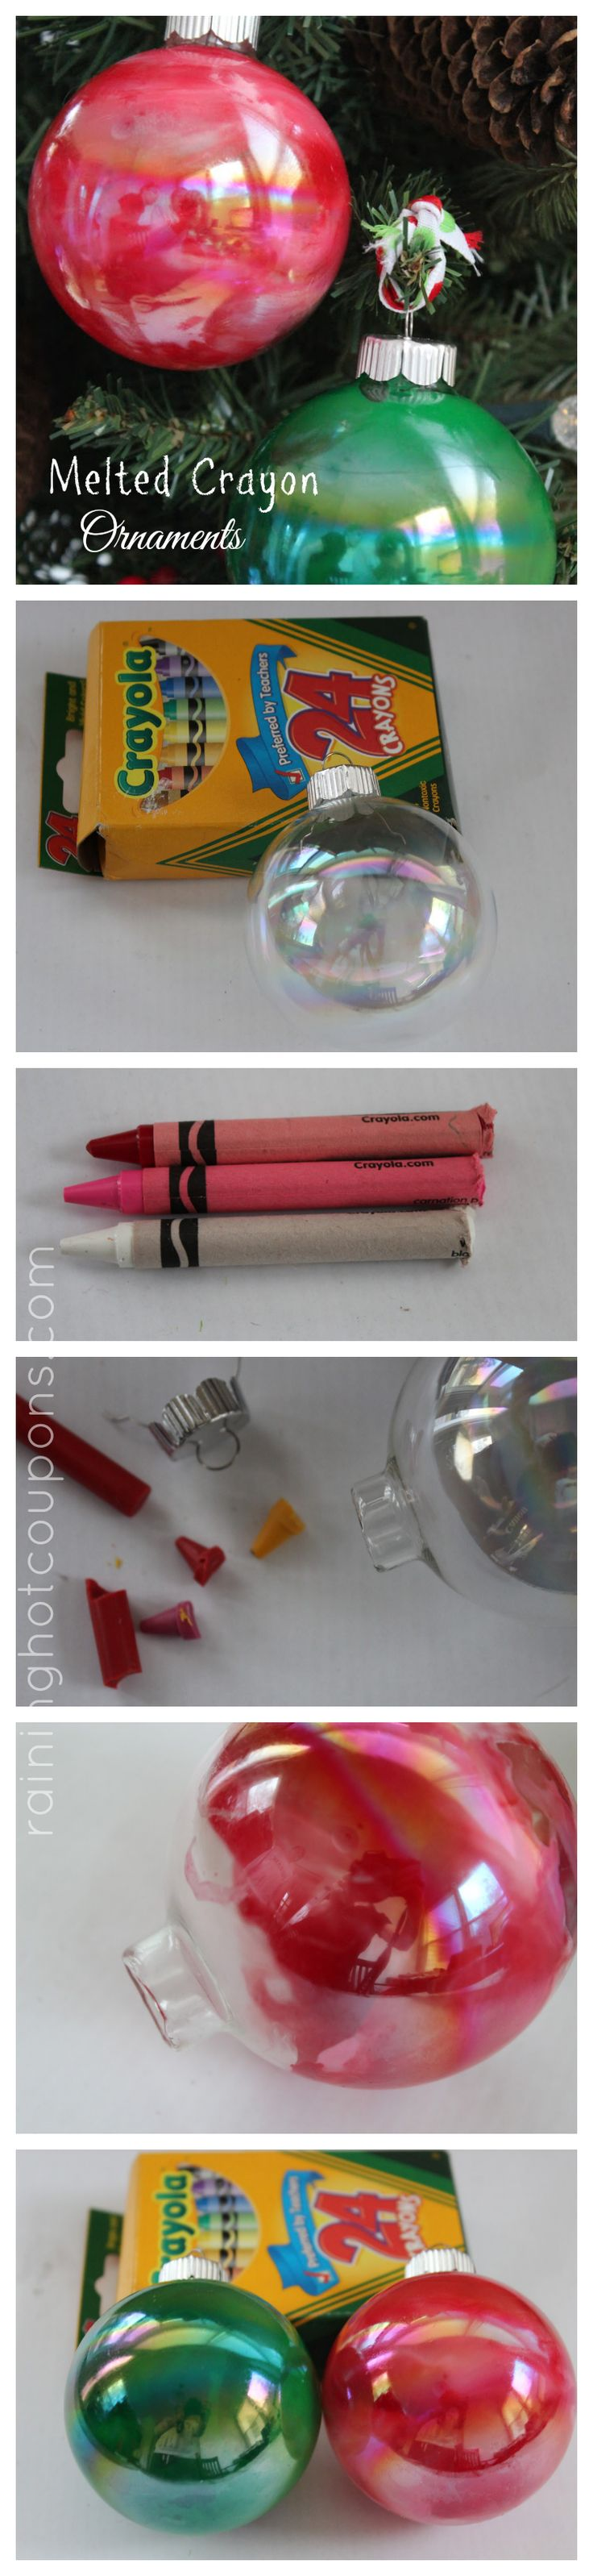 Melted Crayon Ornaments: please let me know if these actually turn out! How do you get the wax melted? Before or after putting it inside the ornaments?